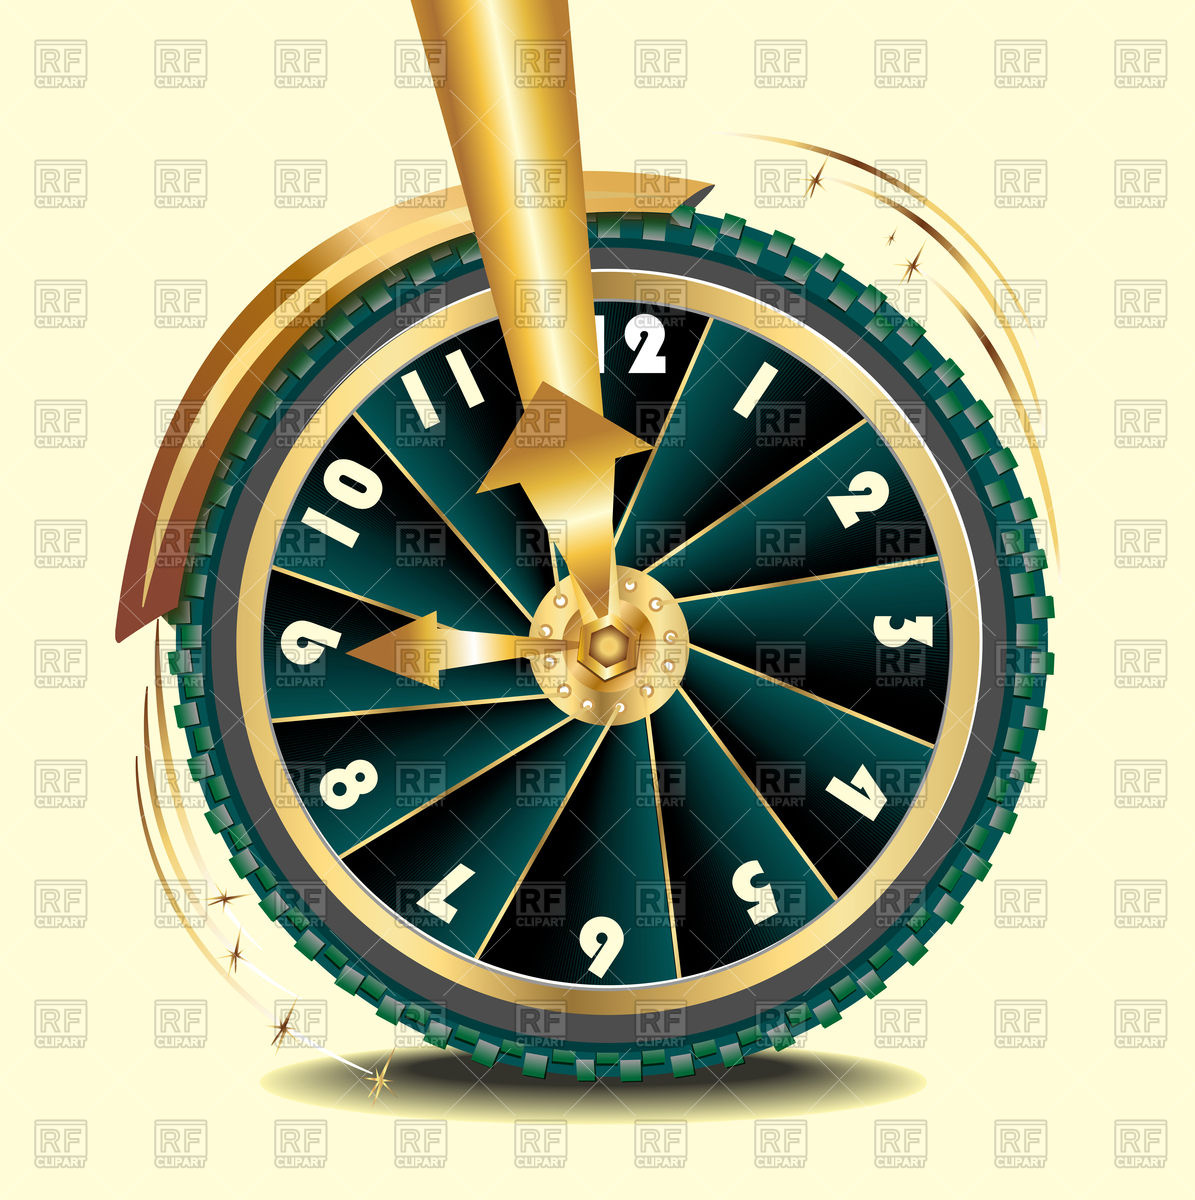 Wheel as symbol of transience of time Vector Image #101896.